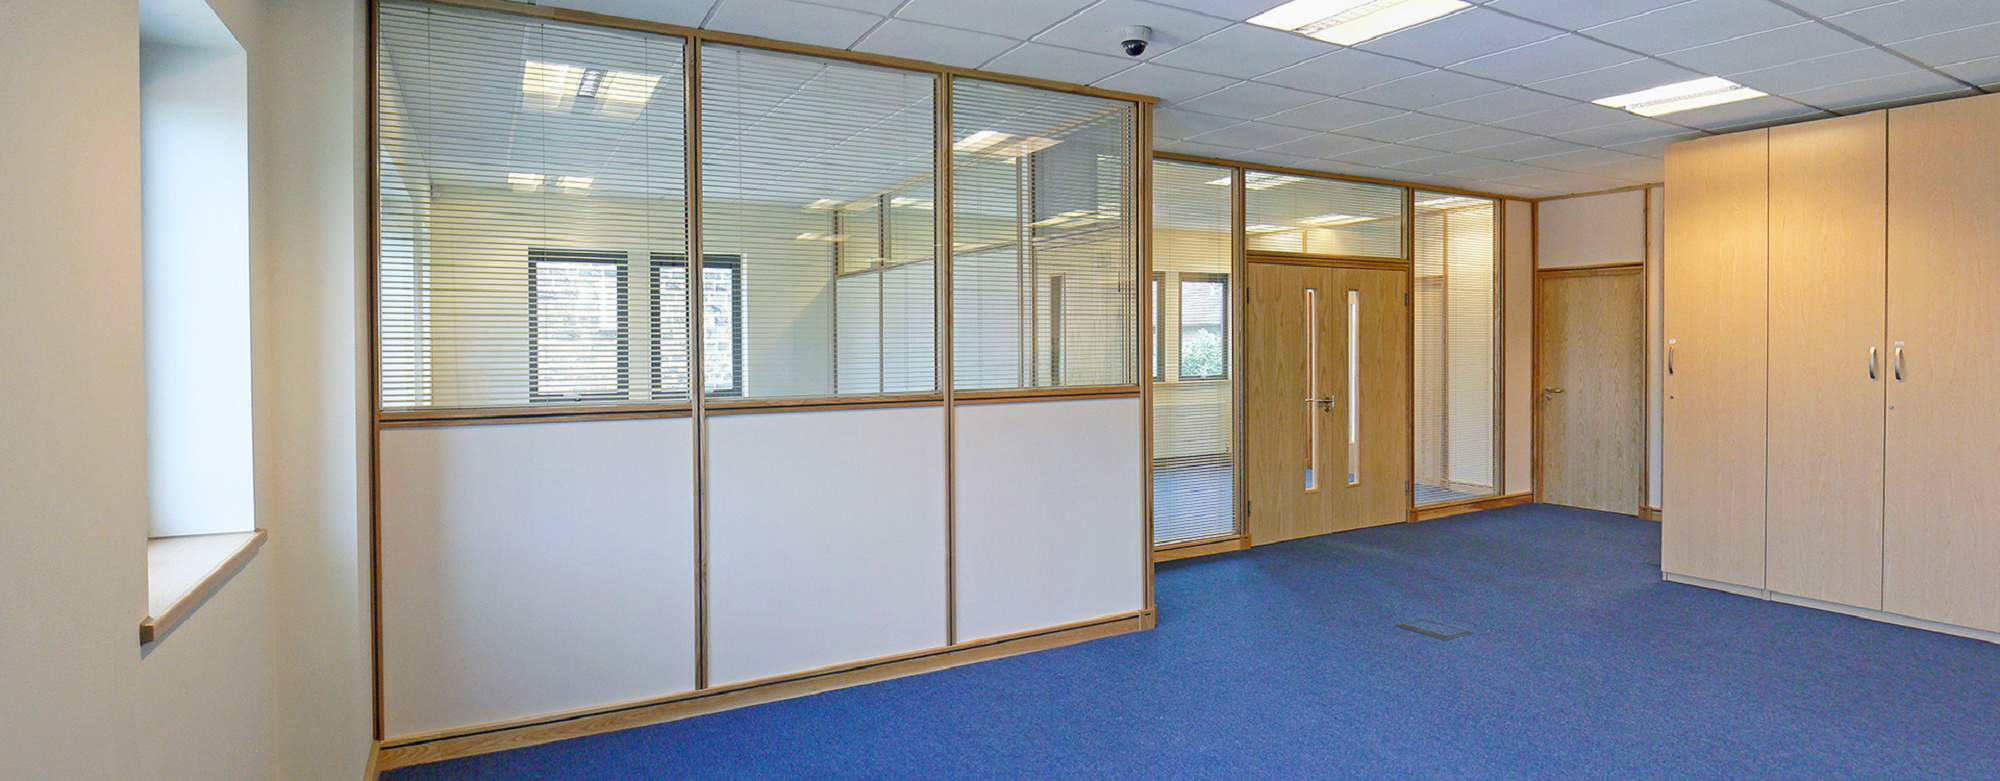 office screens dividers. Office Screens Dividers. Dividers